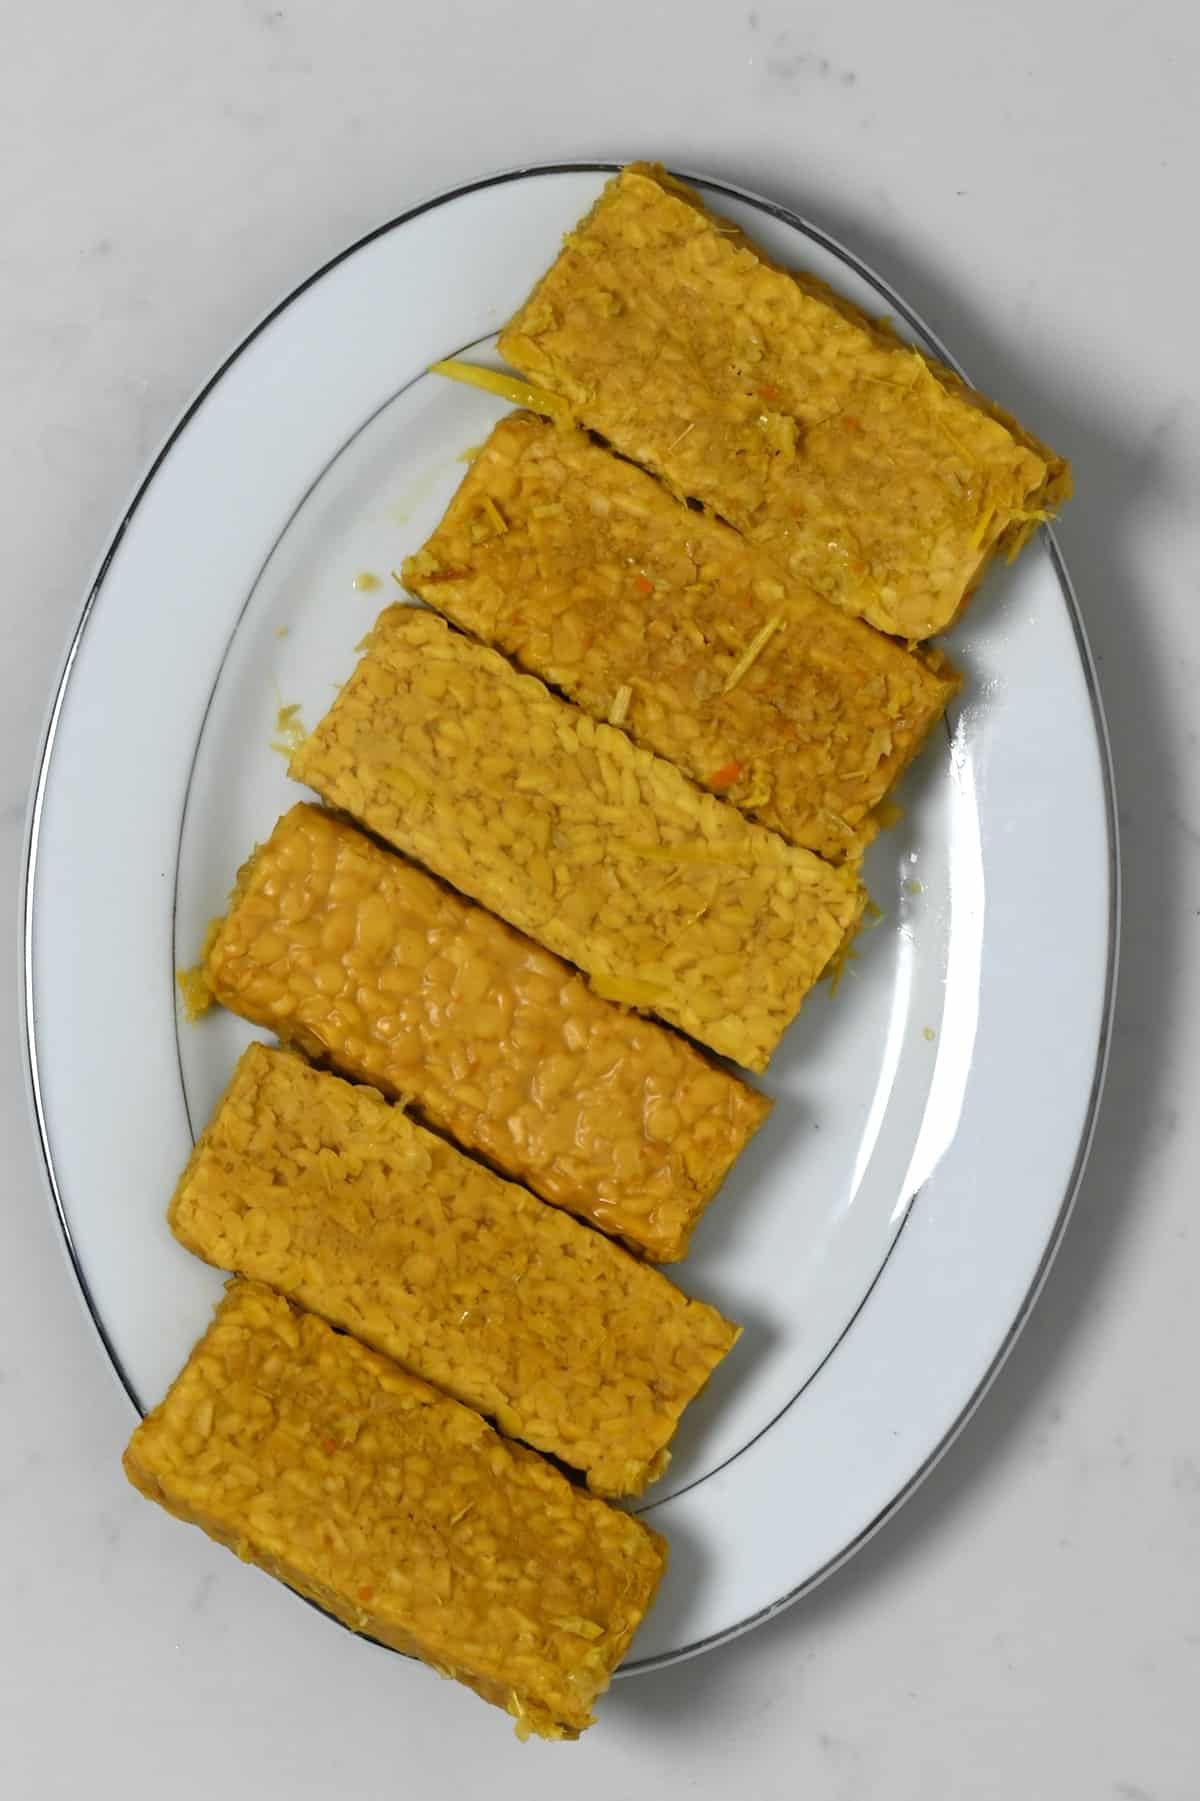 Cooked tempeh on a plate